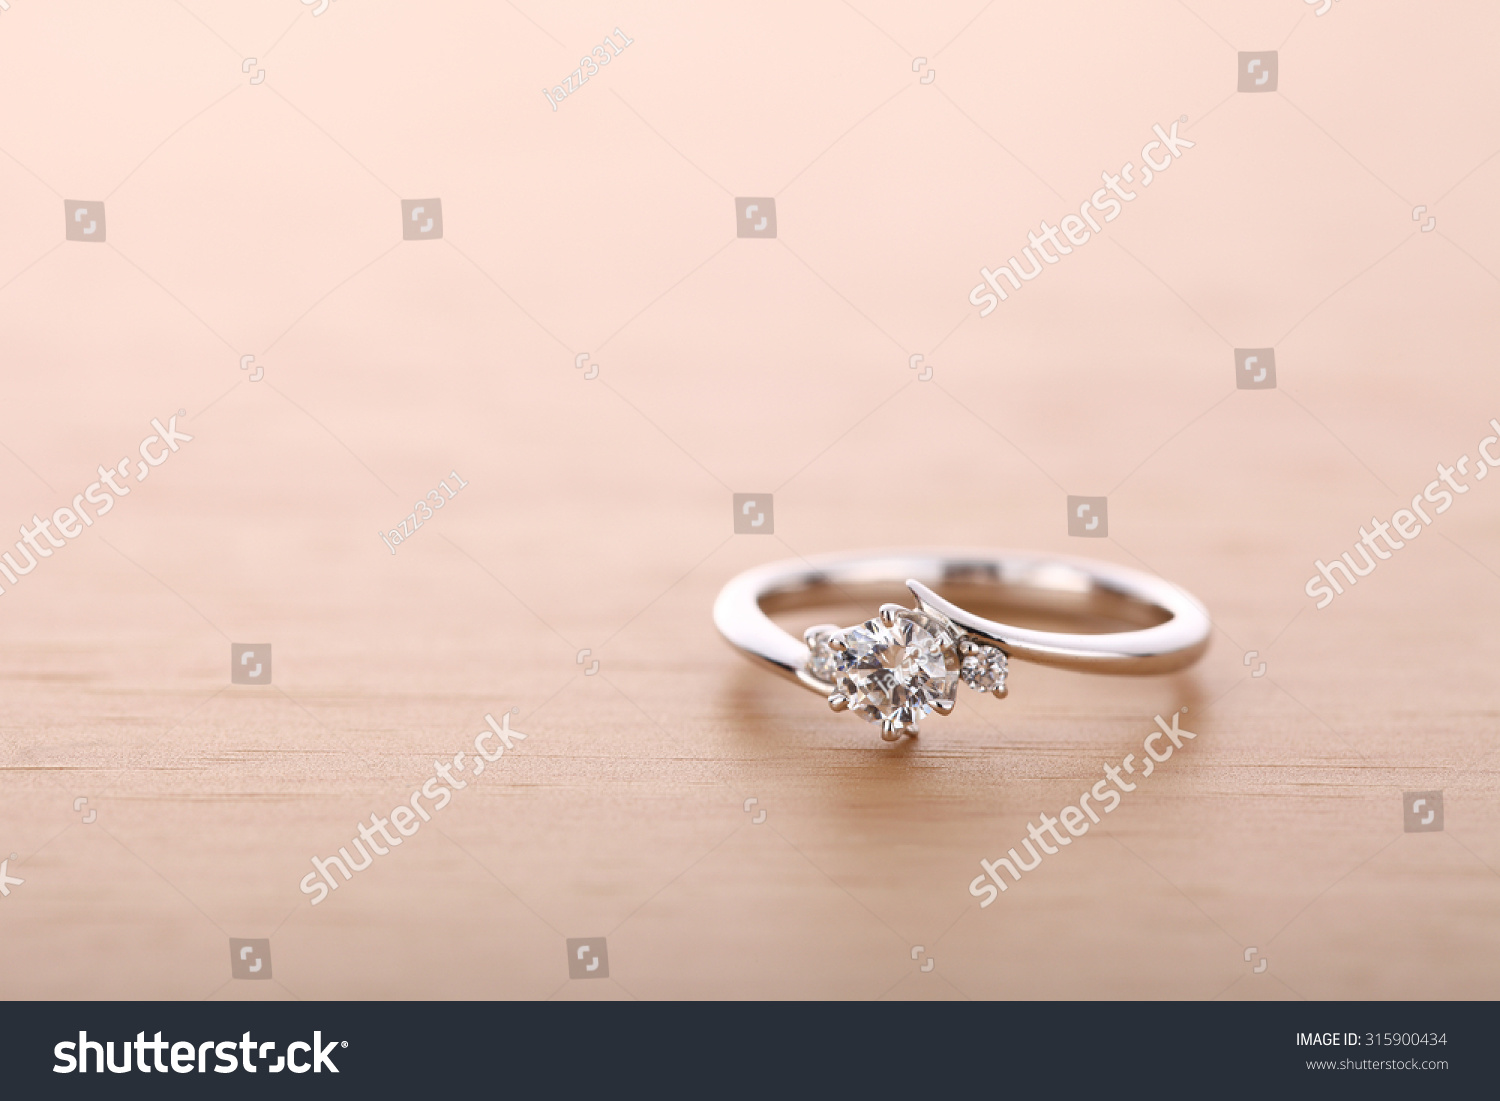 Engagement Ring Stock Photo (Edit Now) 315900434 - Shutterstock